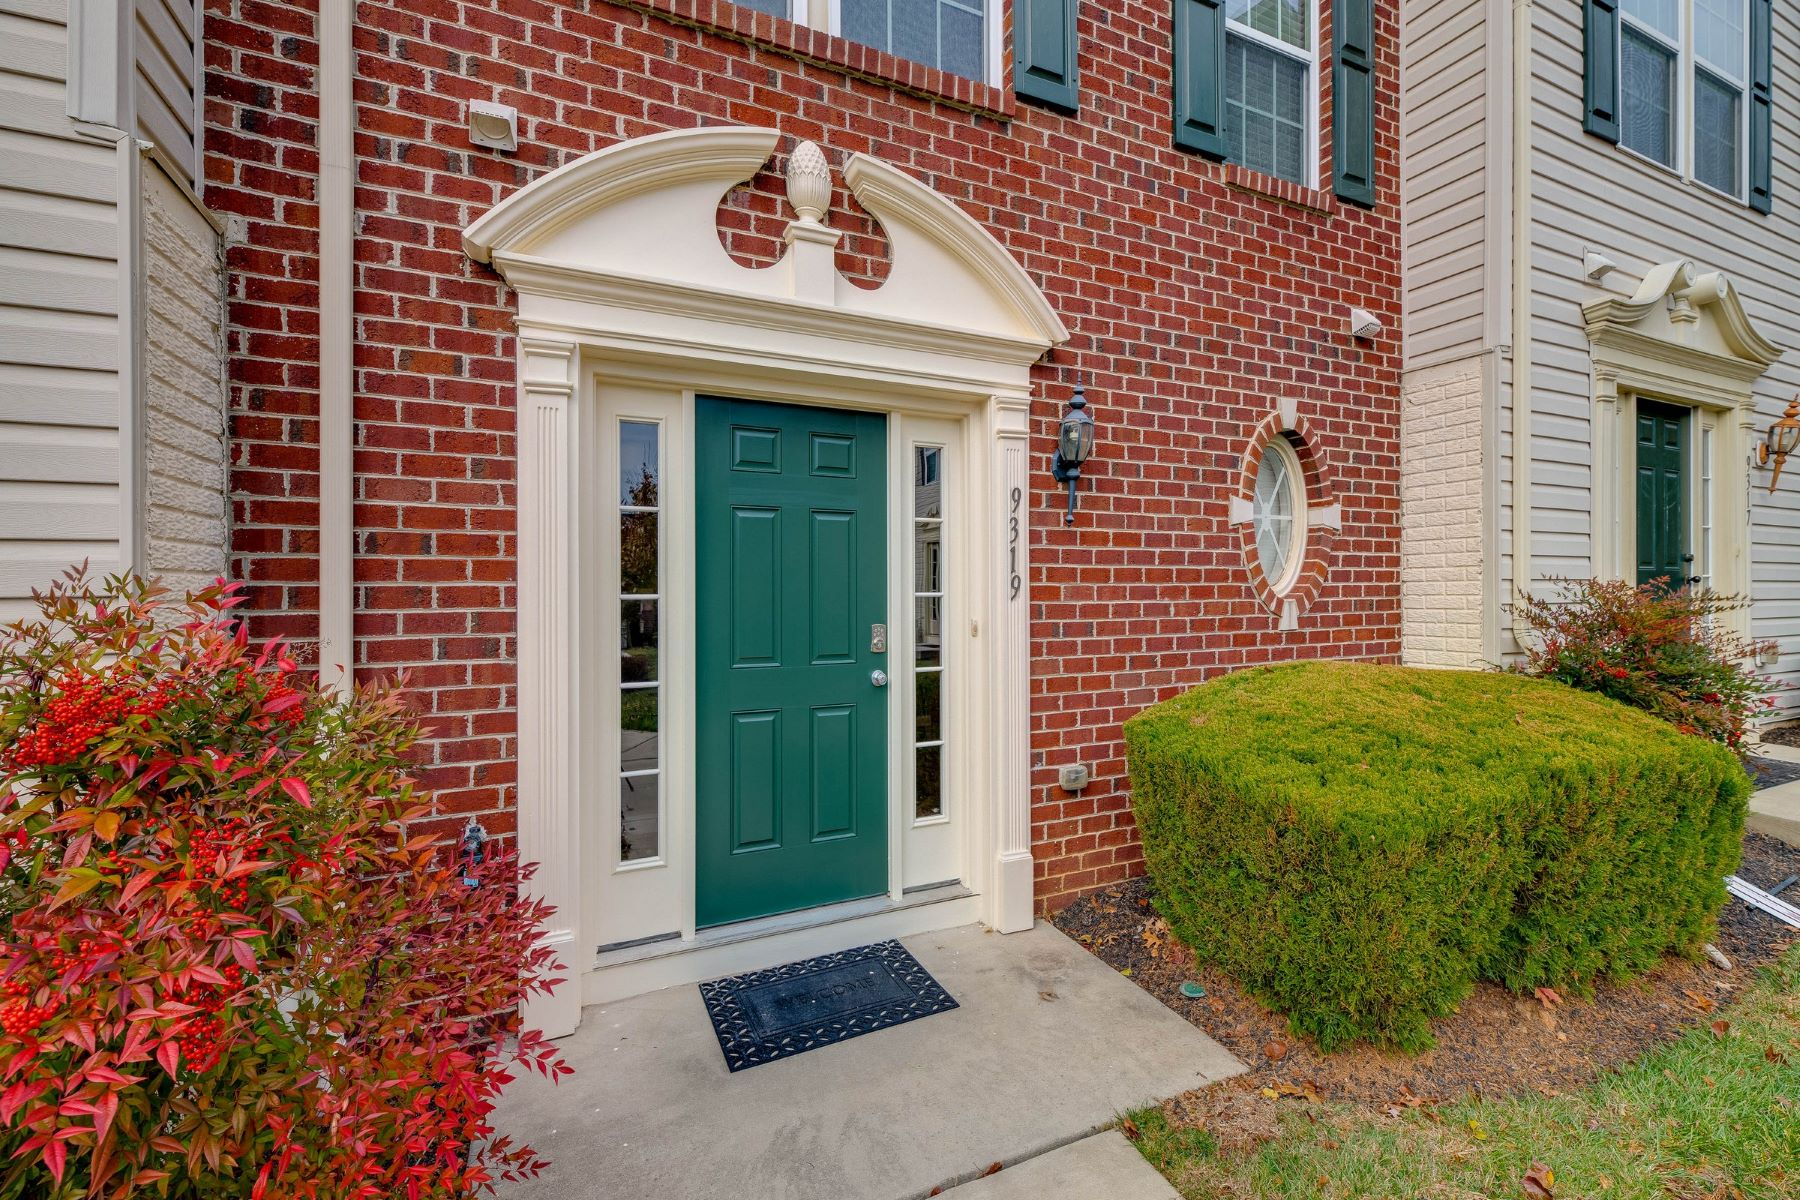 Single Family Homes for Active at Esplanade Red Run 9319 Paragon Way Owings Mills, Maryland 21117 United States